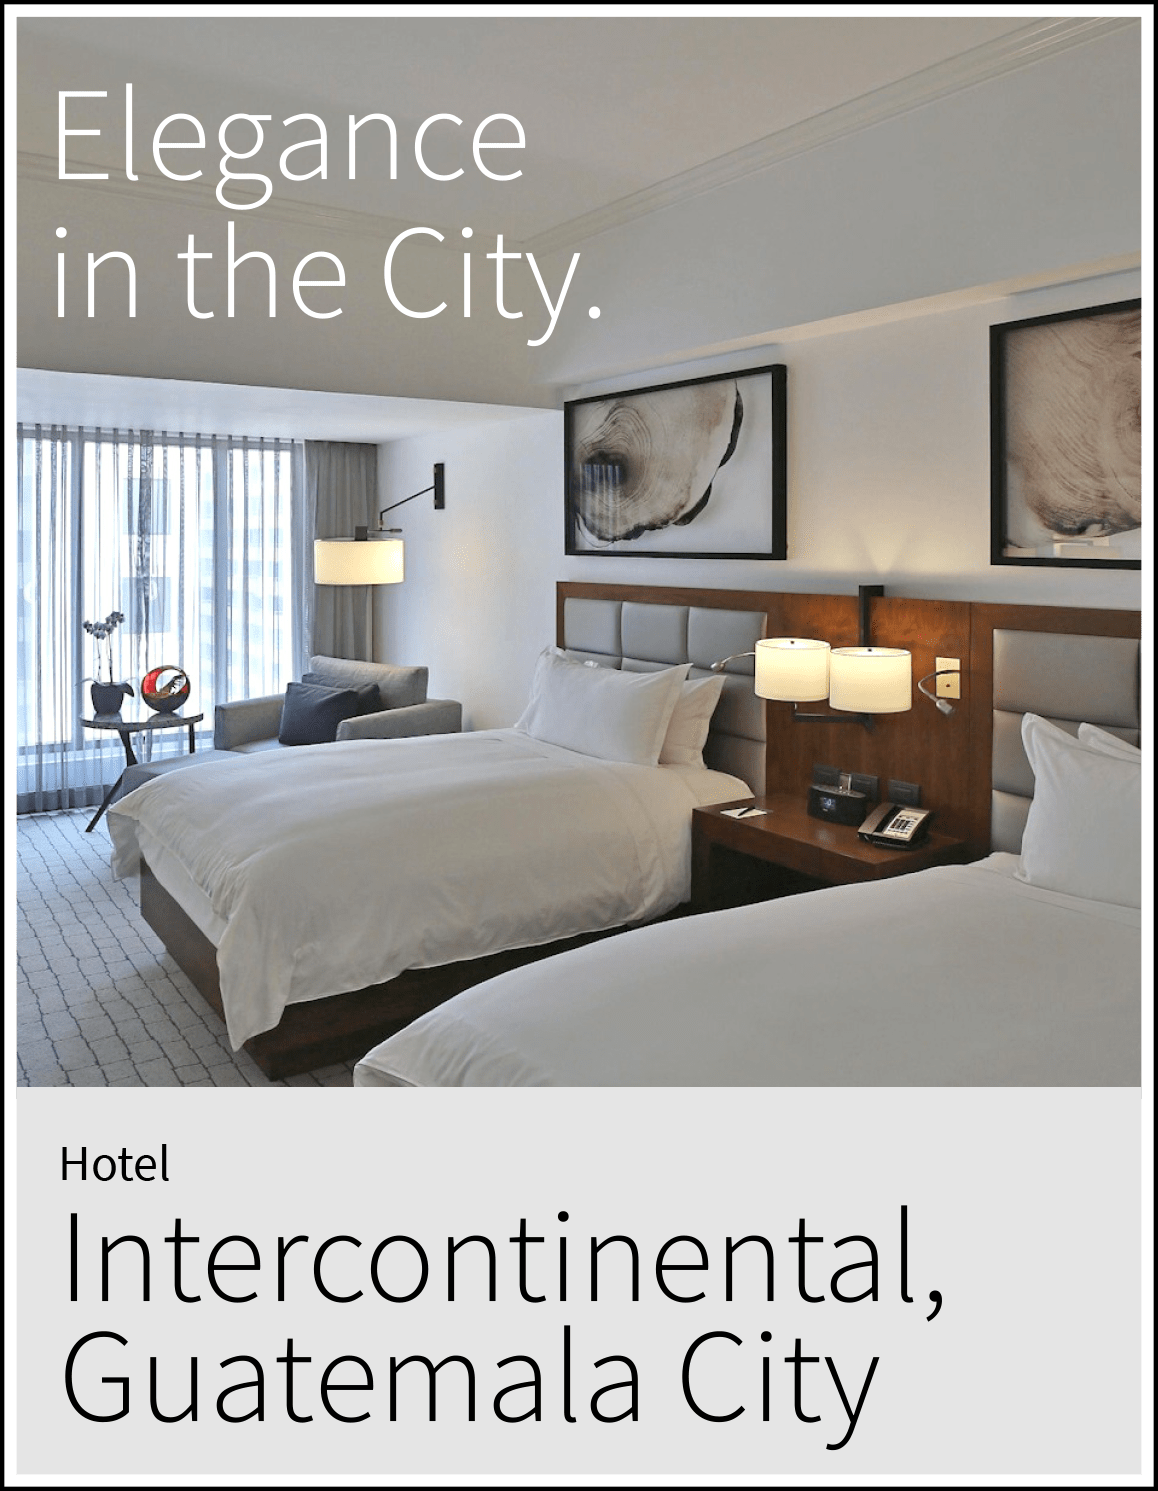 Hotel Intercontinental in Guatemala City